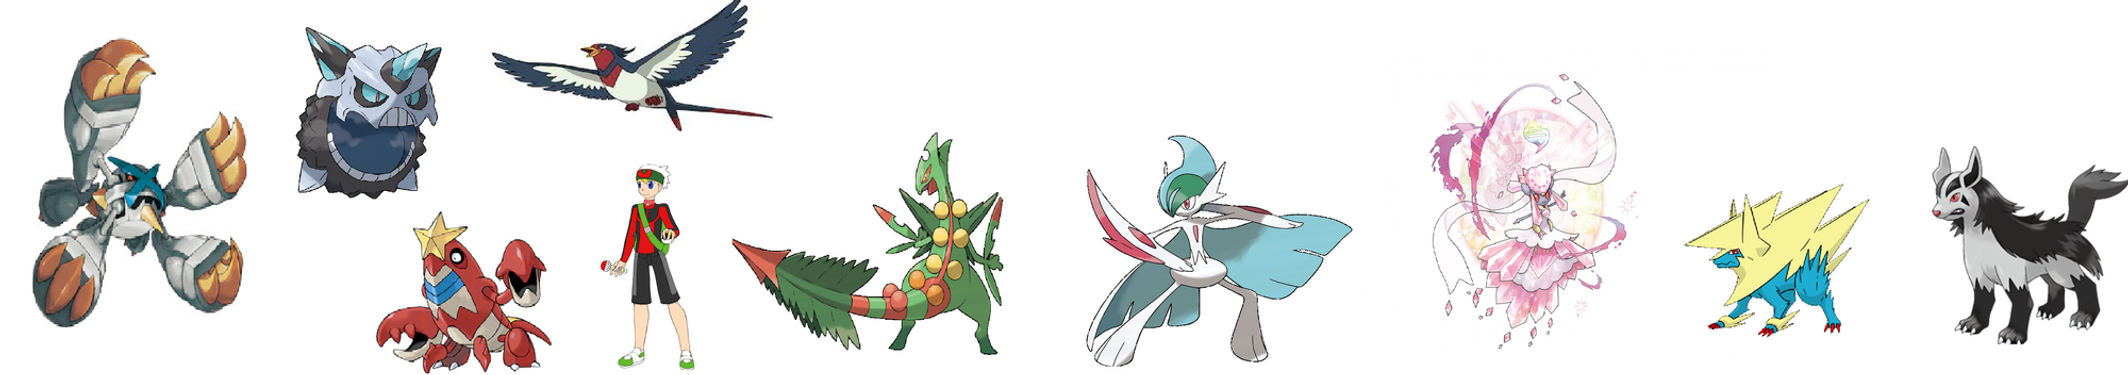 POKEMON OMEGA RUBY AUSTIN39;S TEAM by superaustin15 on